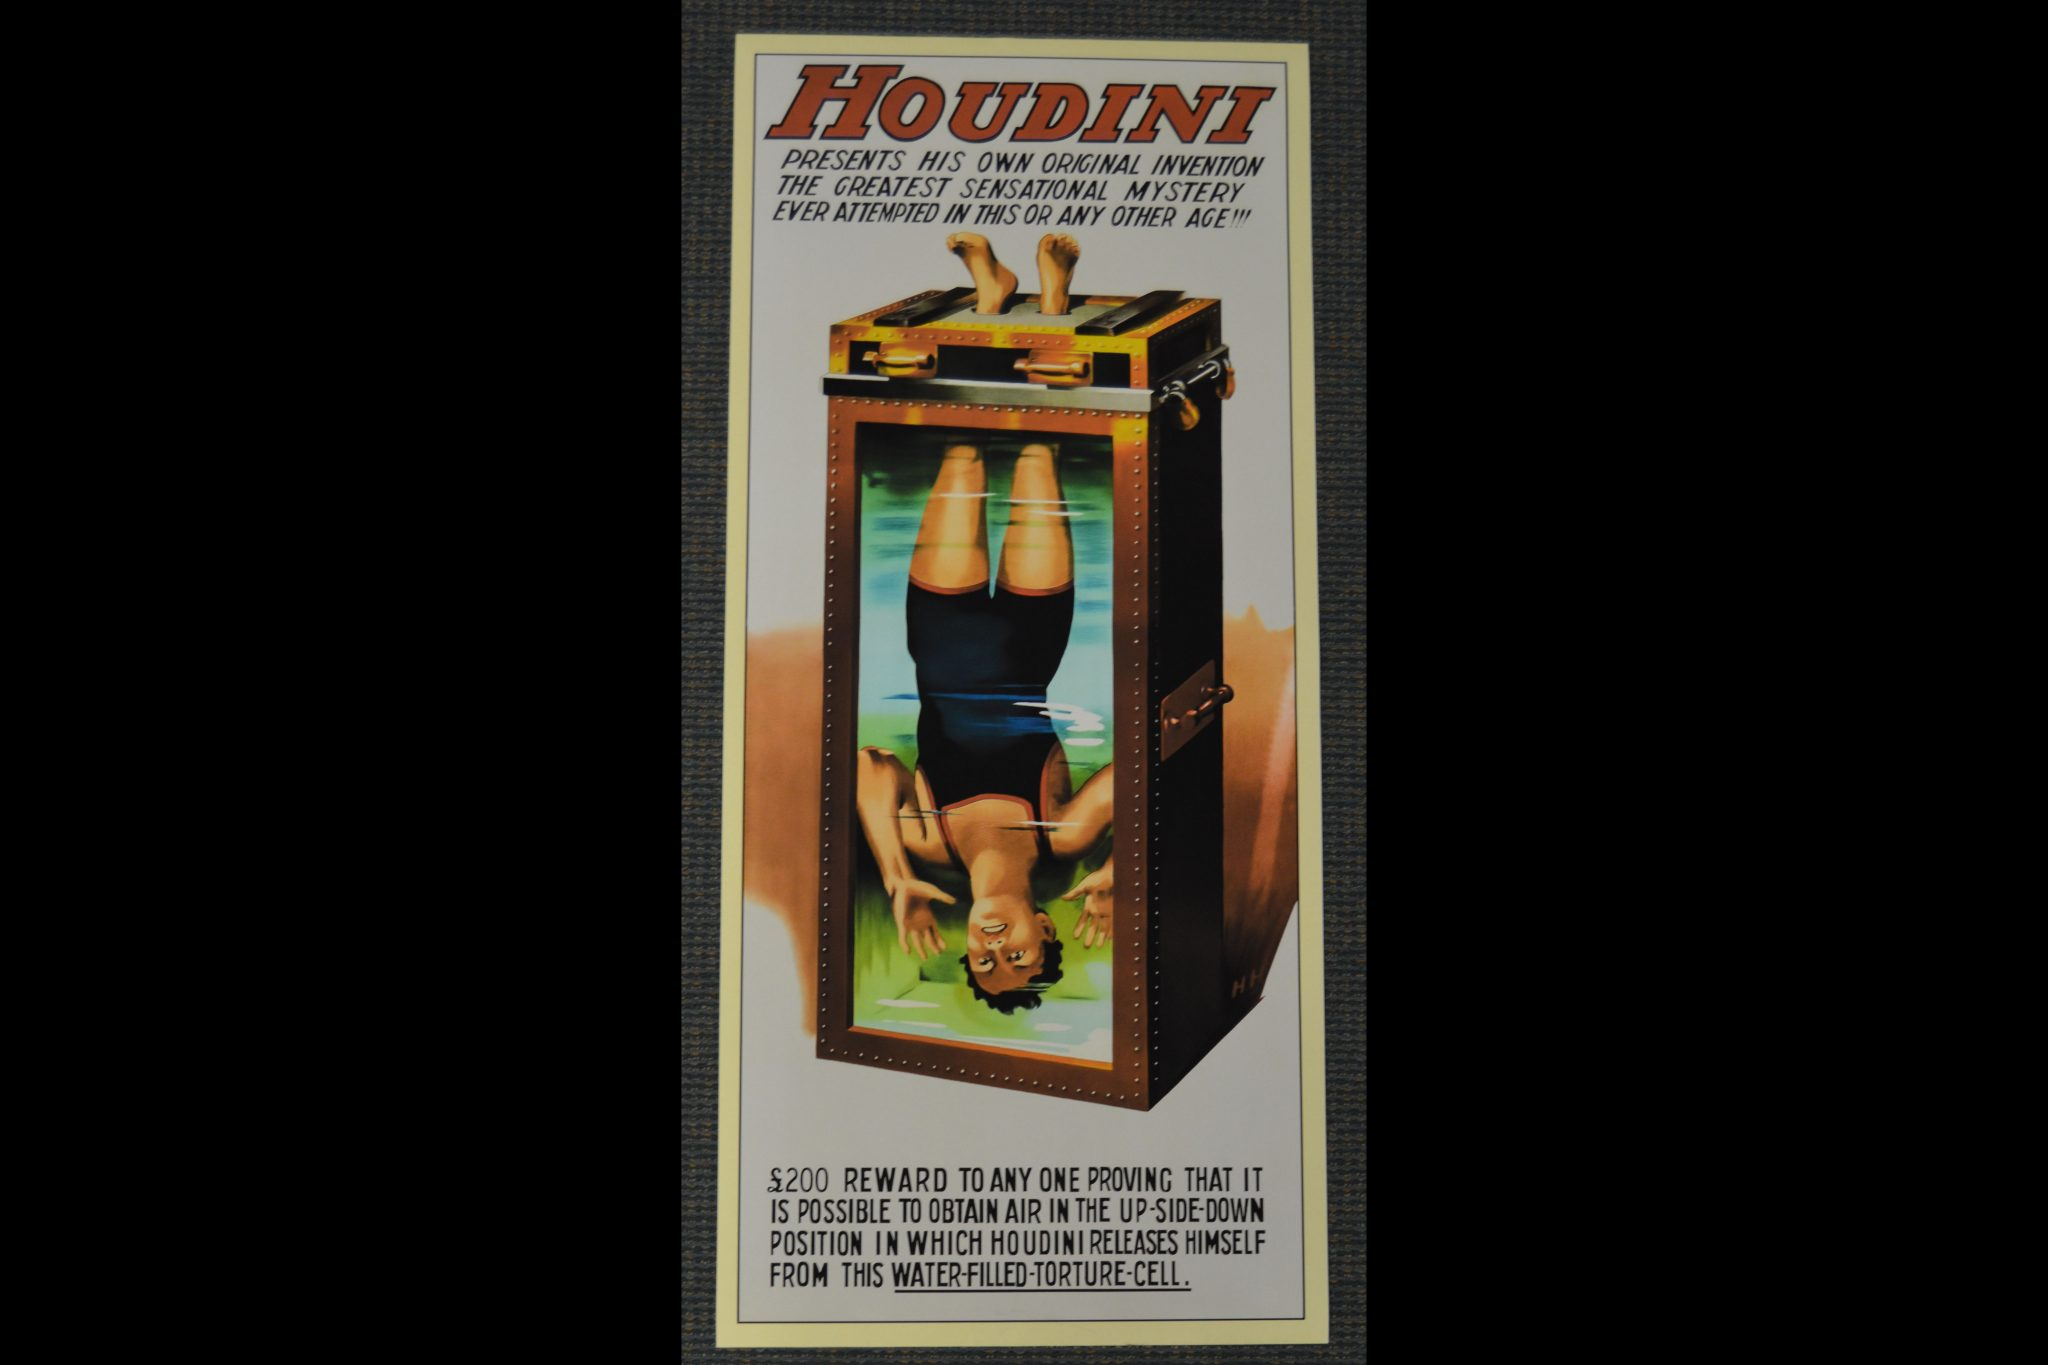 Houdini water torture poster